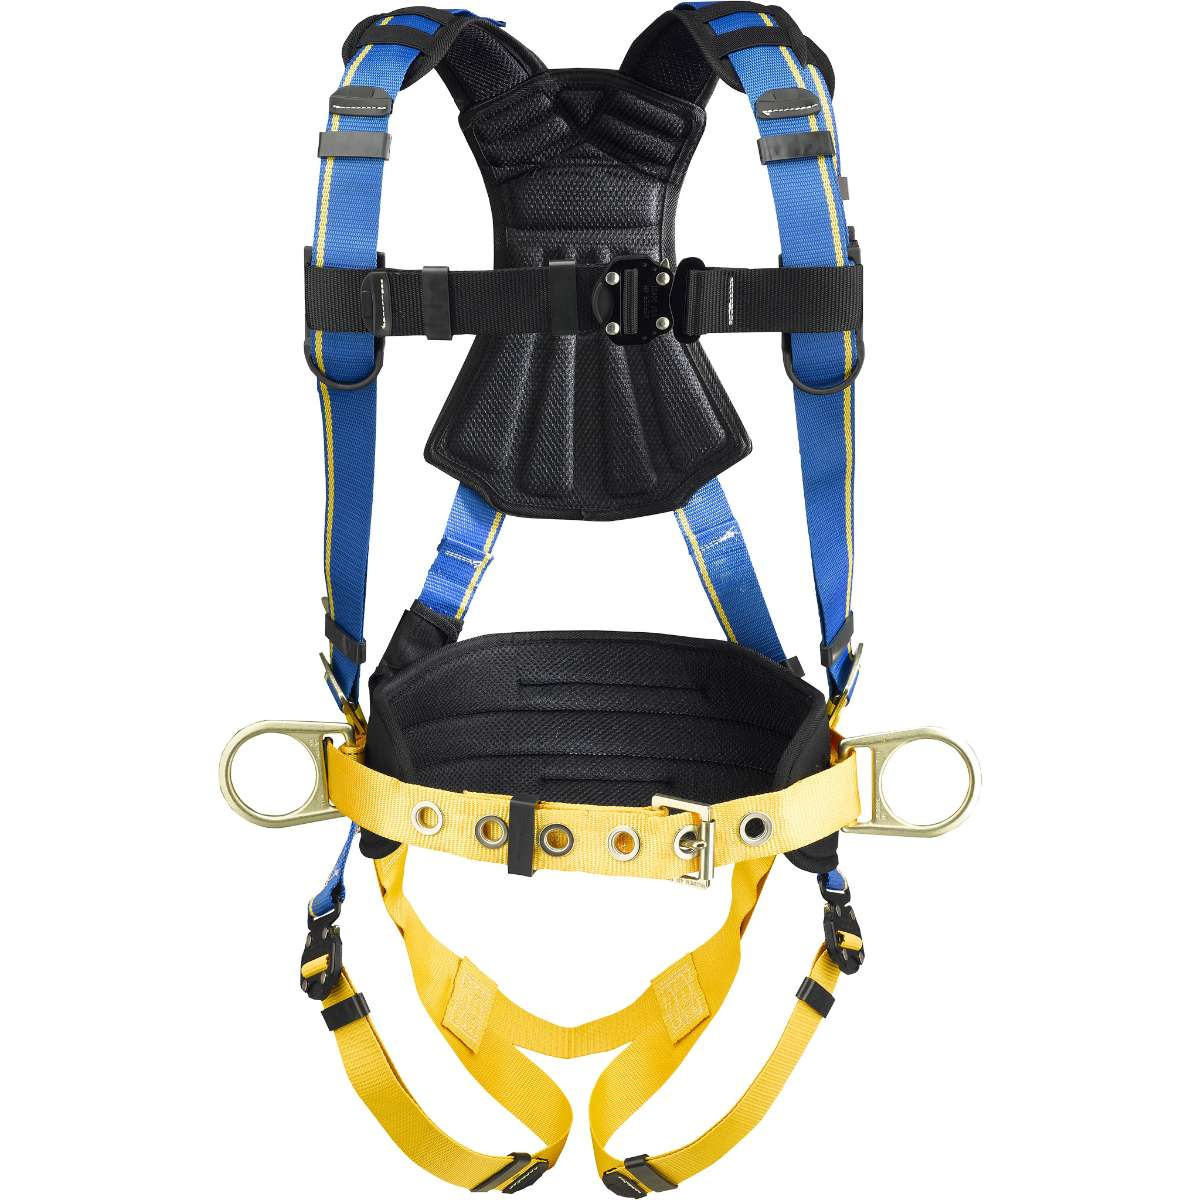 Werner Construction Harness - Quick Connect Legs